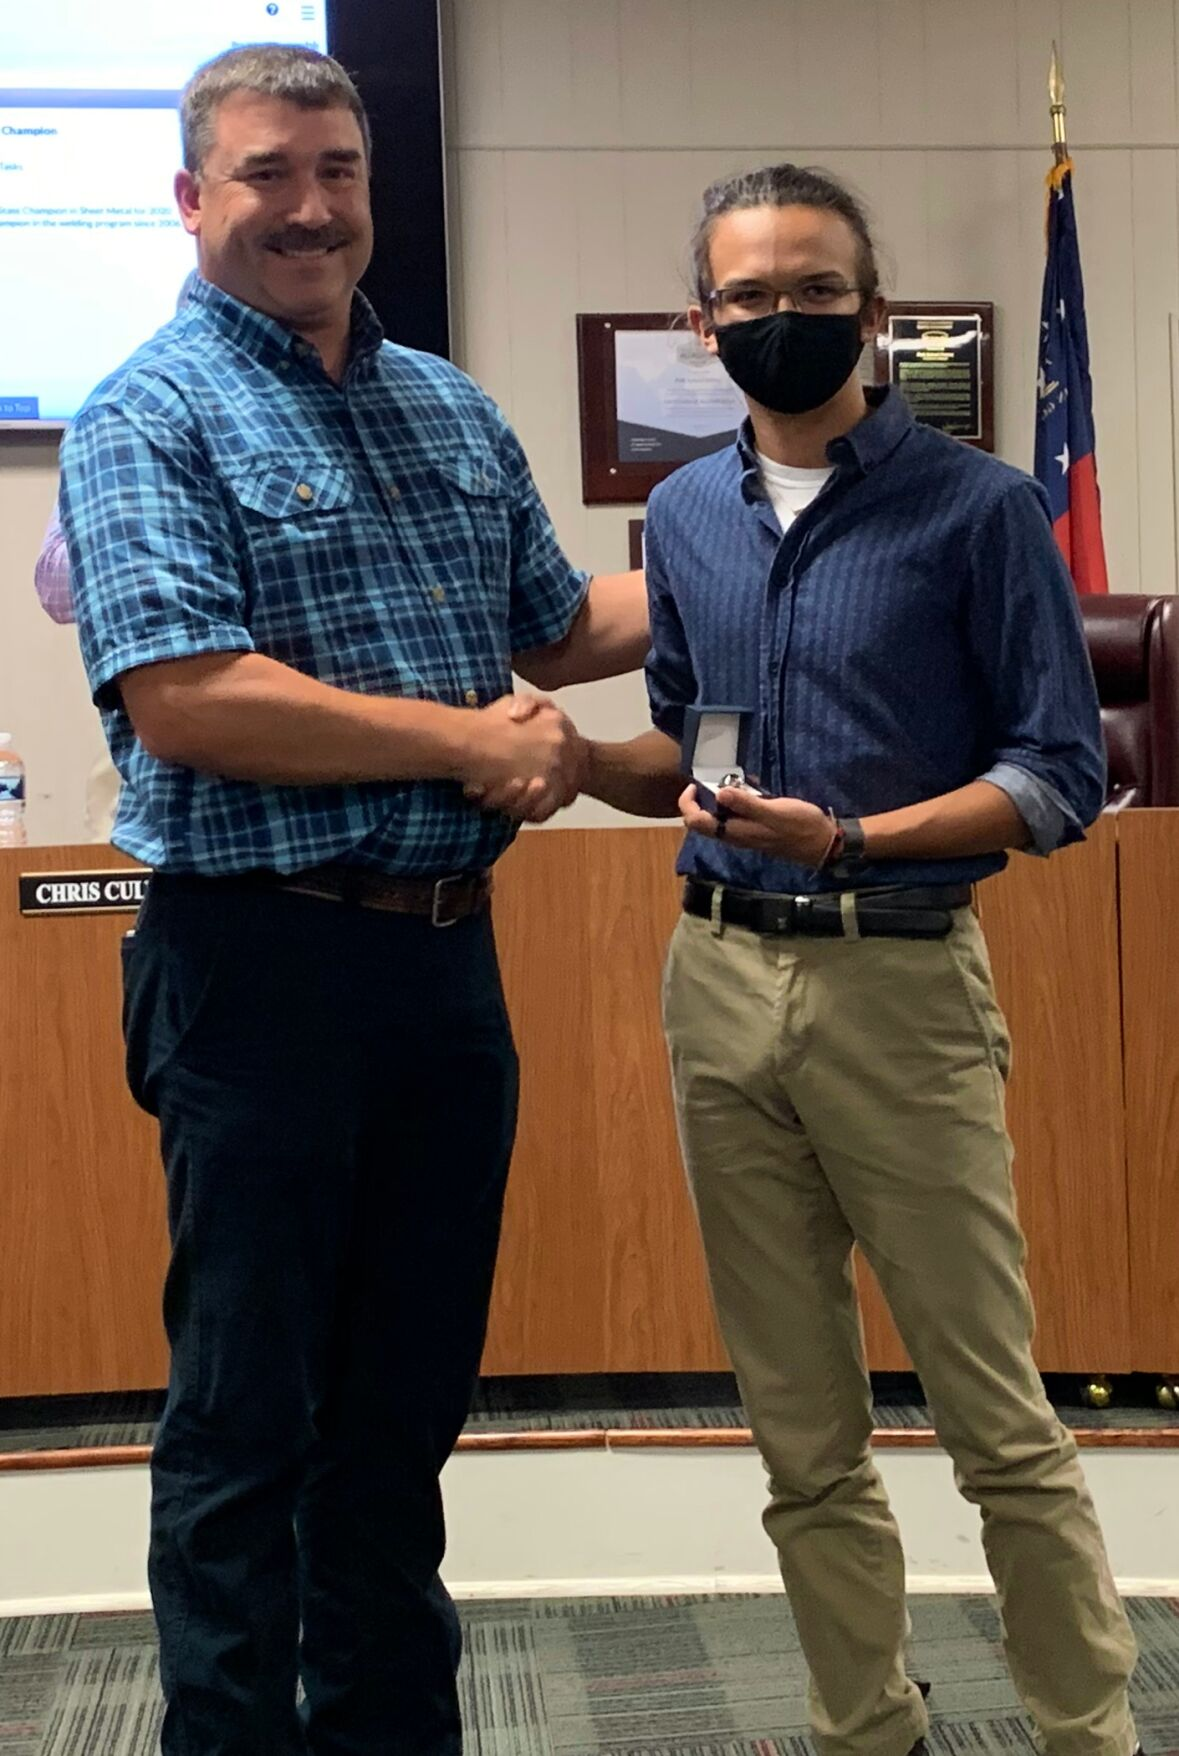 School board recognizes student, employee at meeting